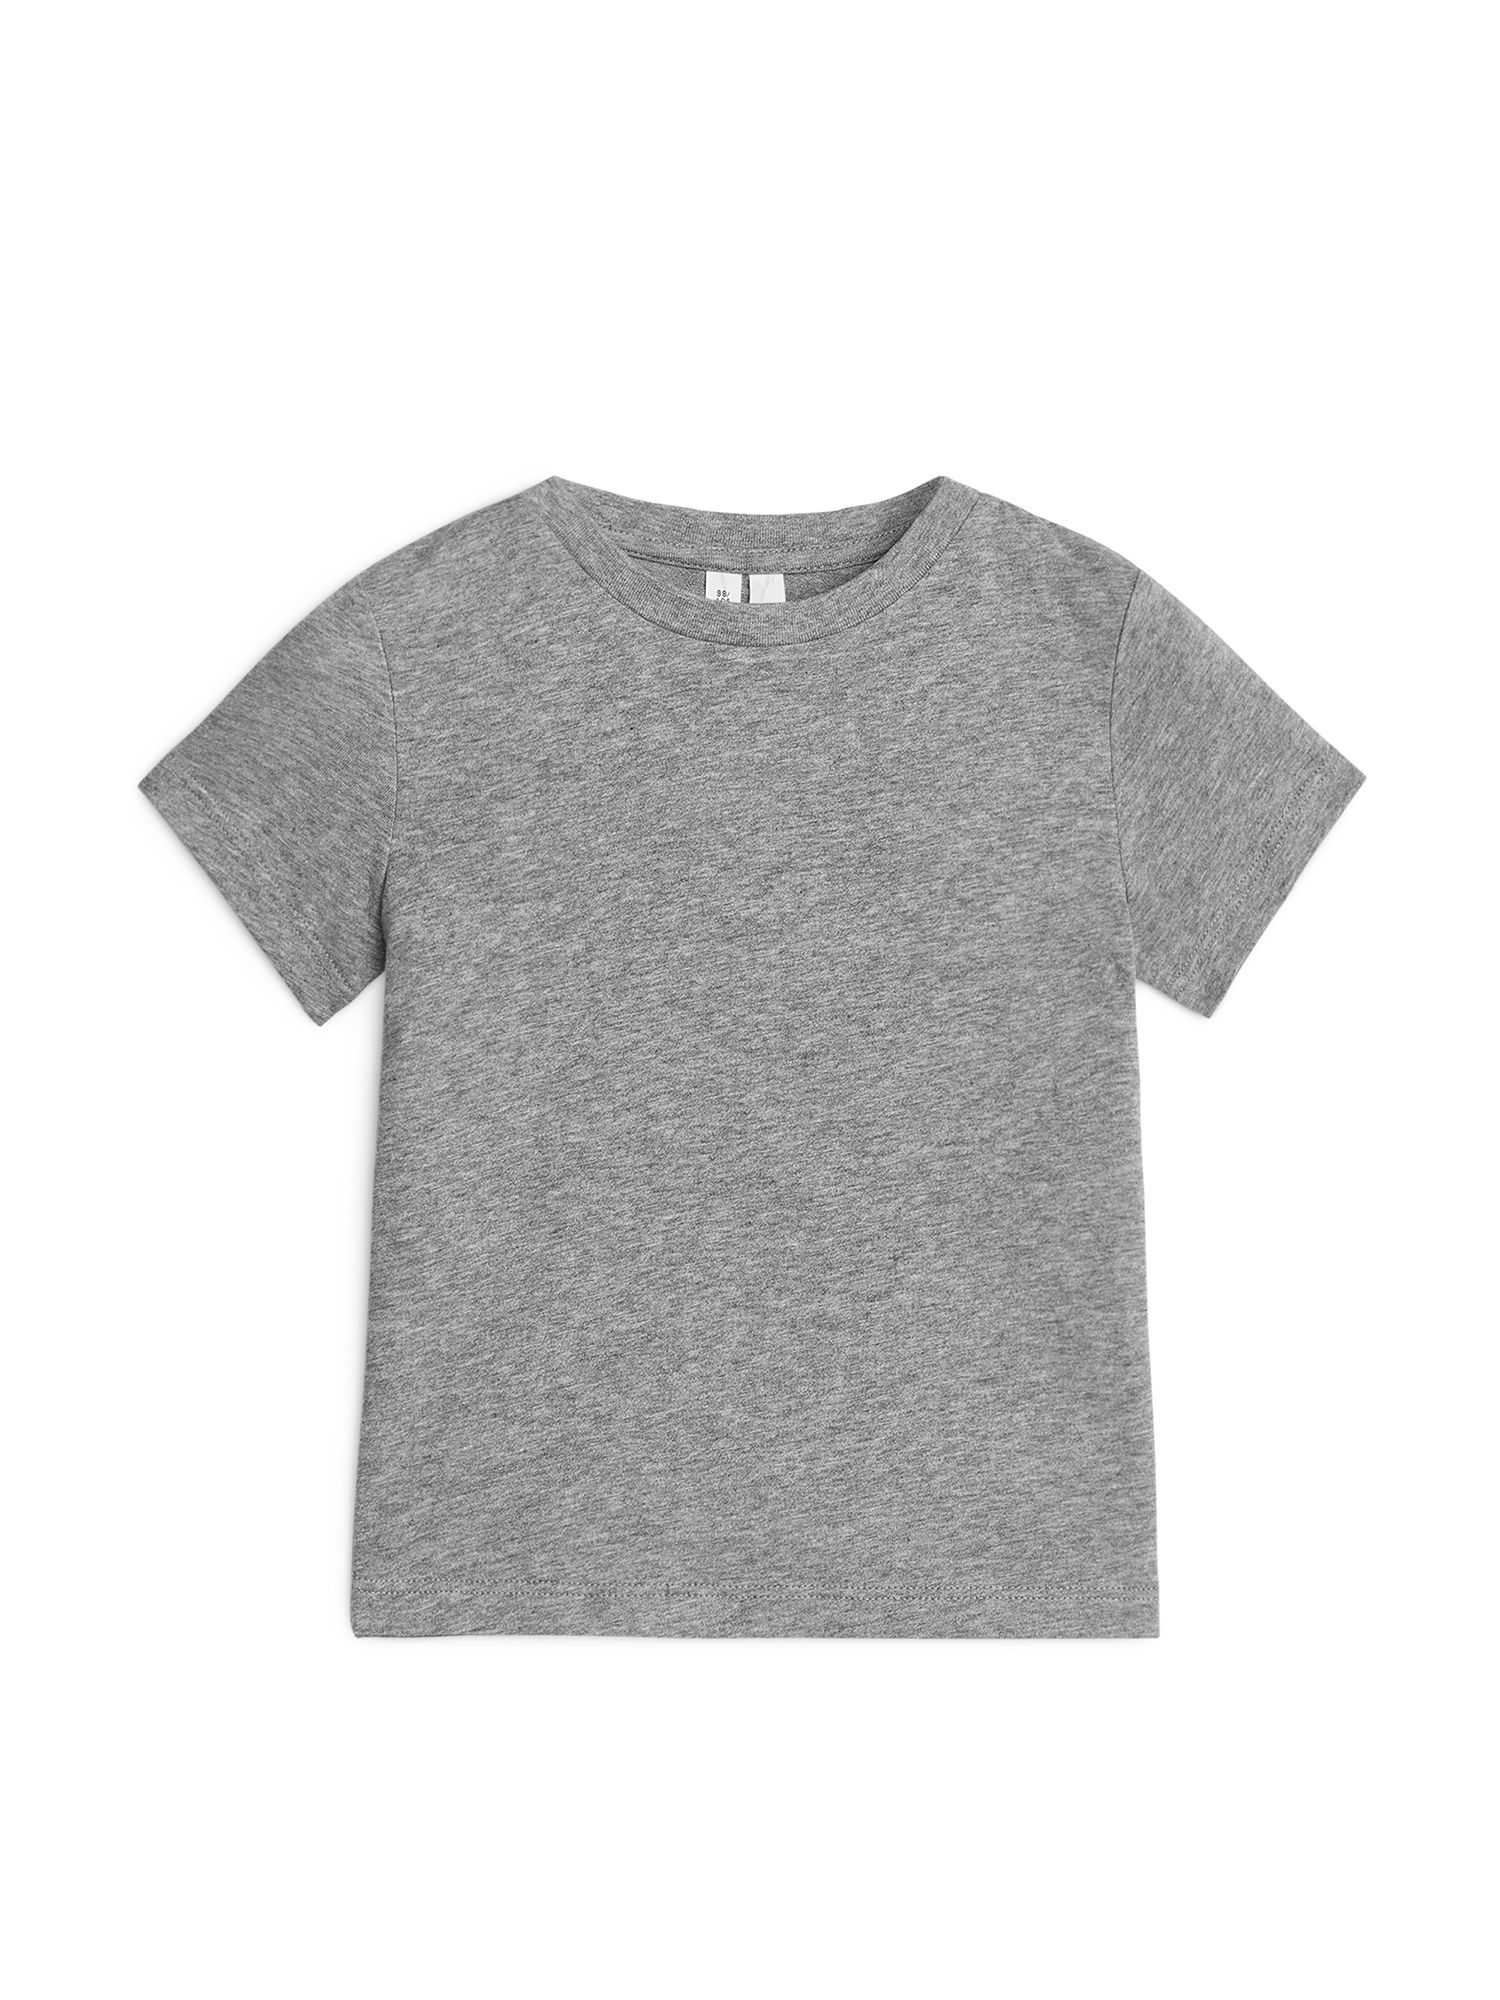 Fabric Swatch image of Arket organic cotton crew-neck t-shirt in grey